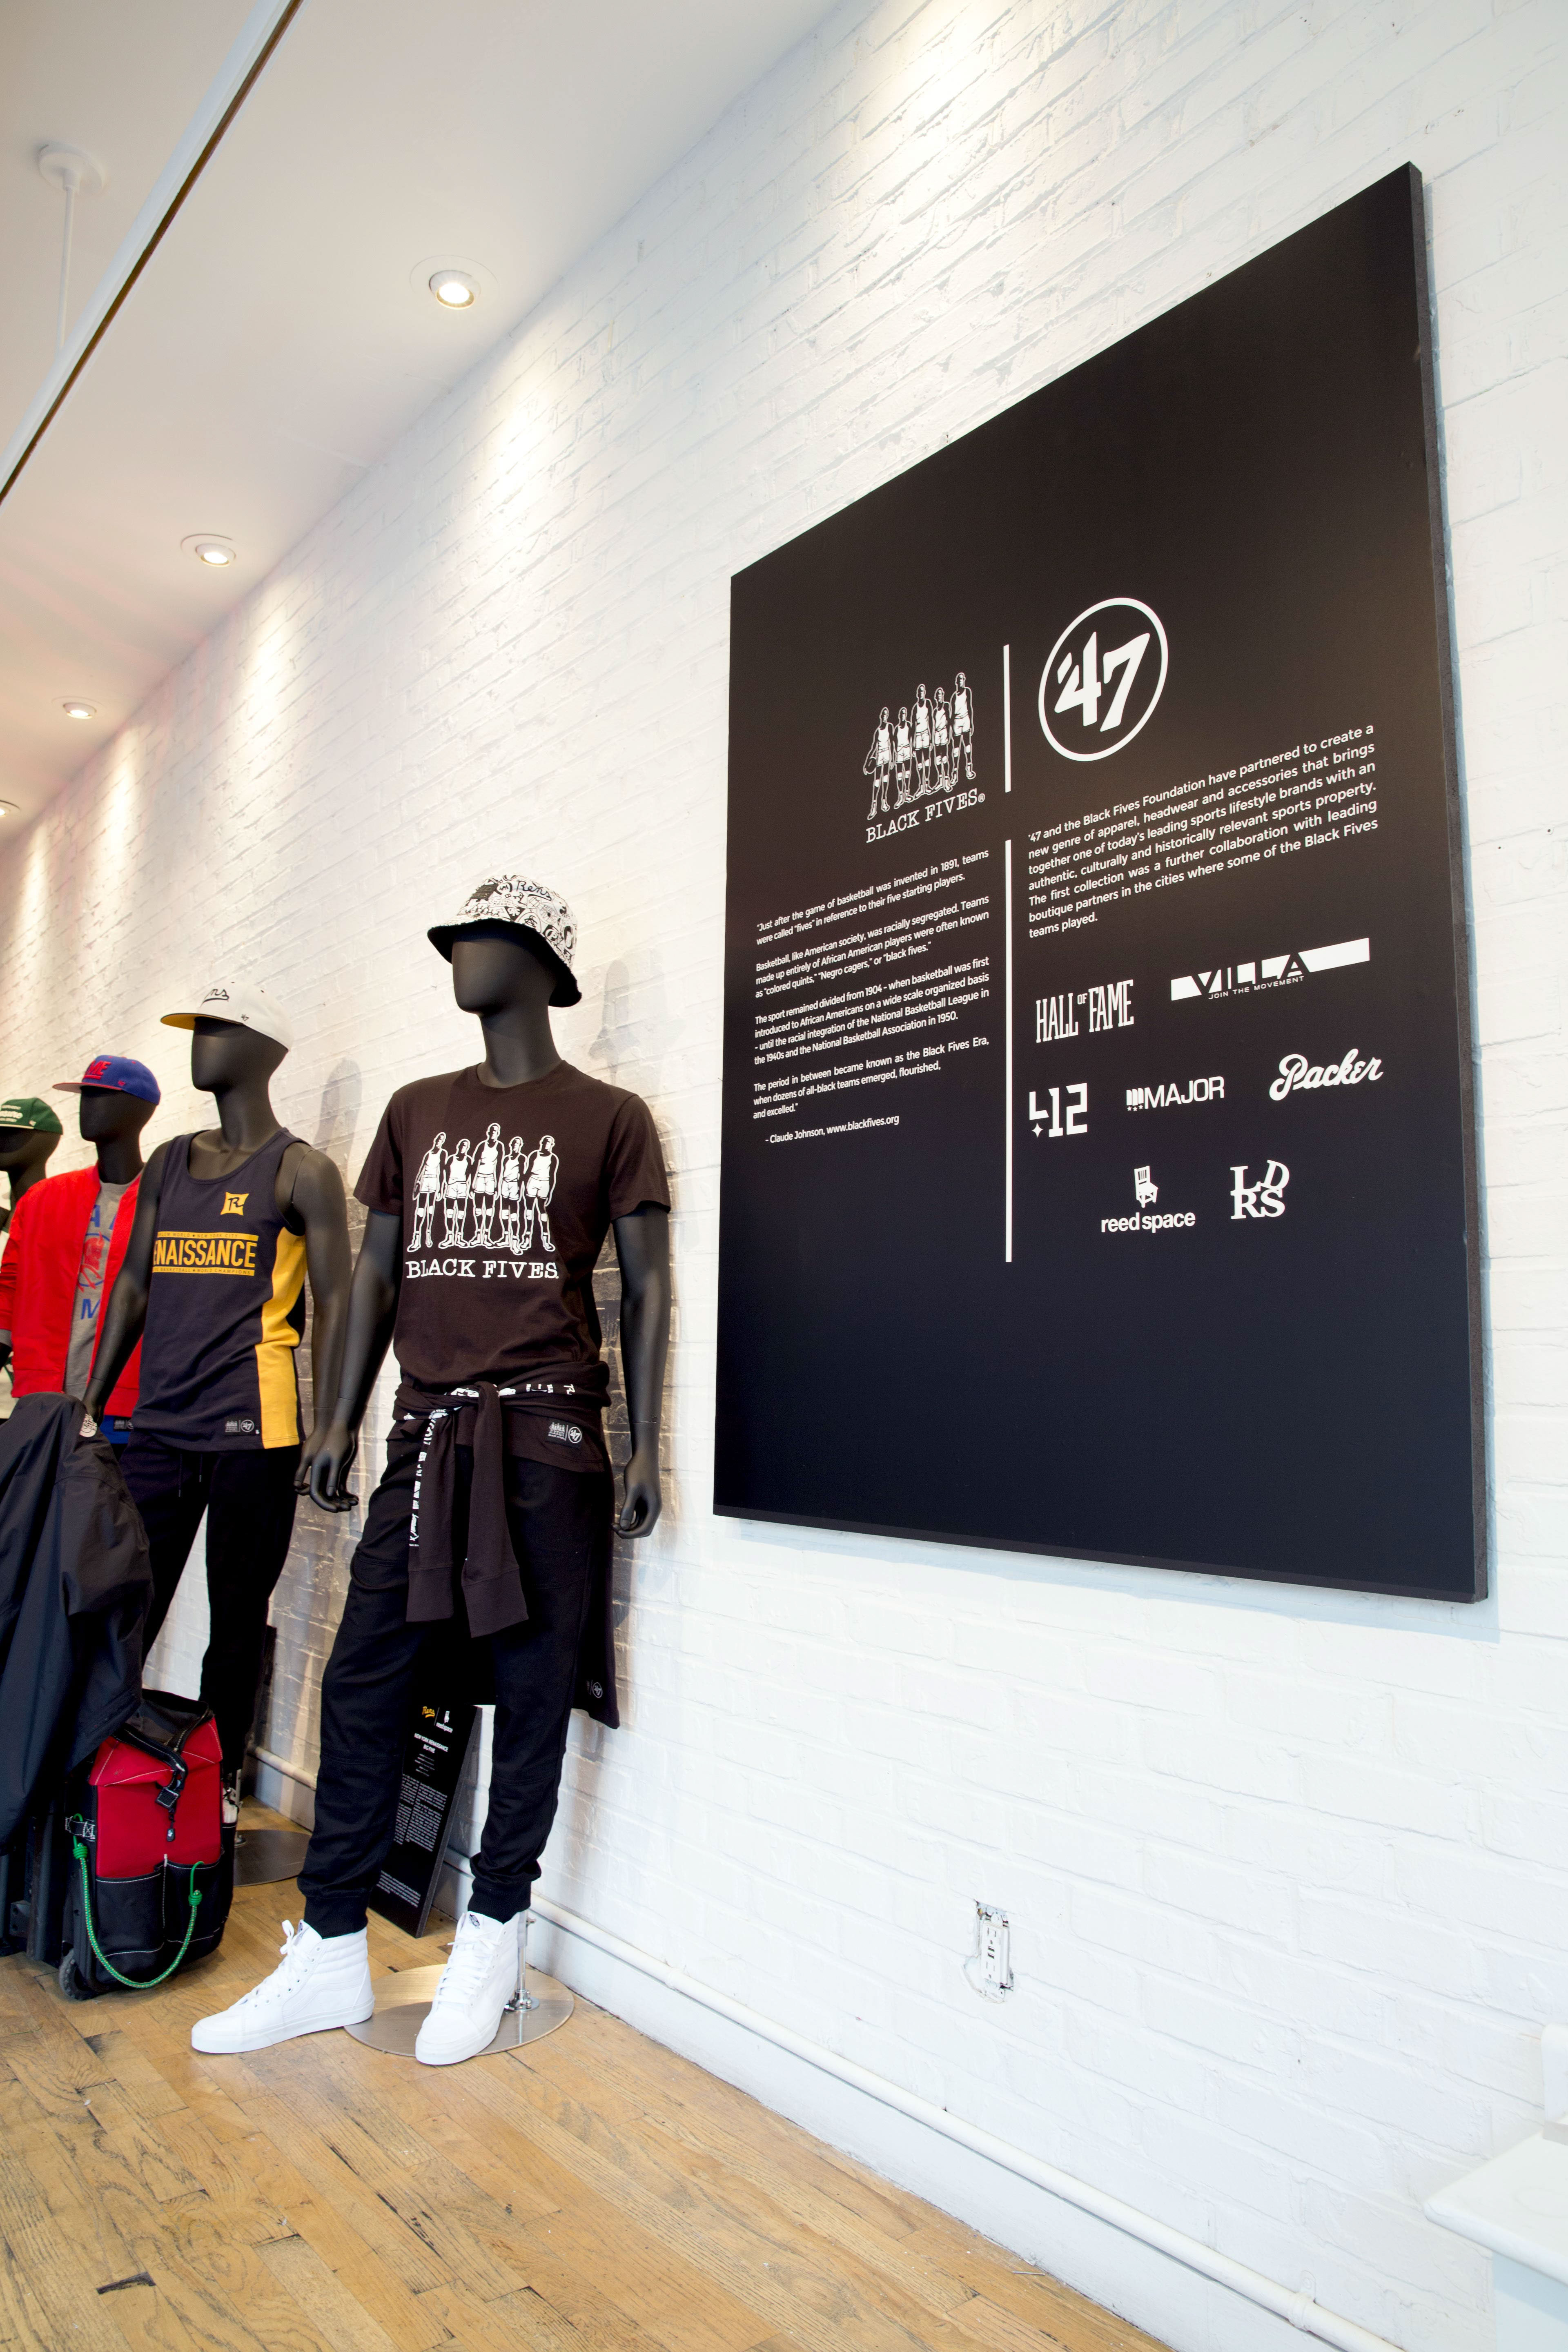 bd72f4e632206  47 x Black Fives Pop-Up Shops NYC   London on Behance